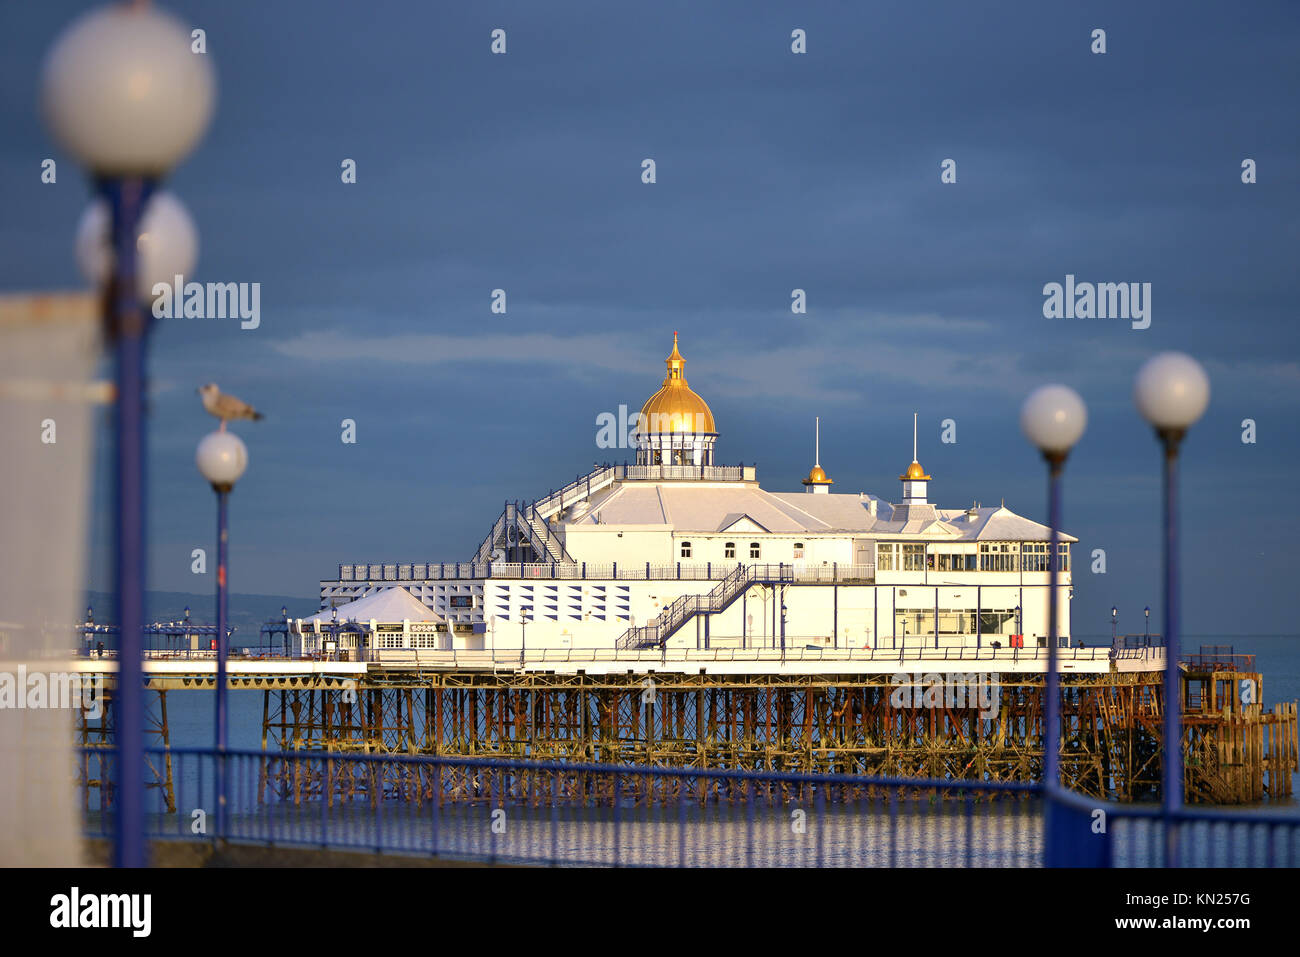 Muelle al atardecer en Eastbourne, East Sussex Imagen De Stock